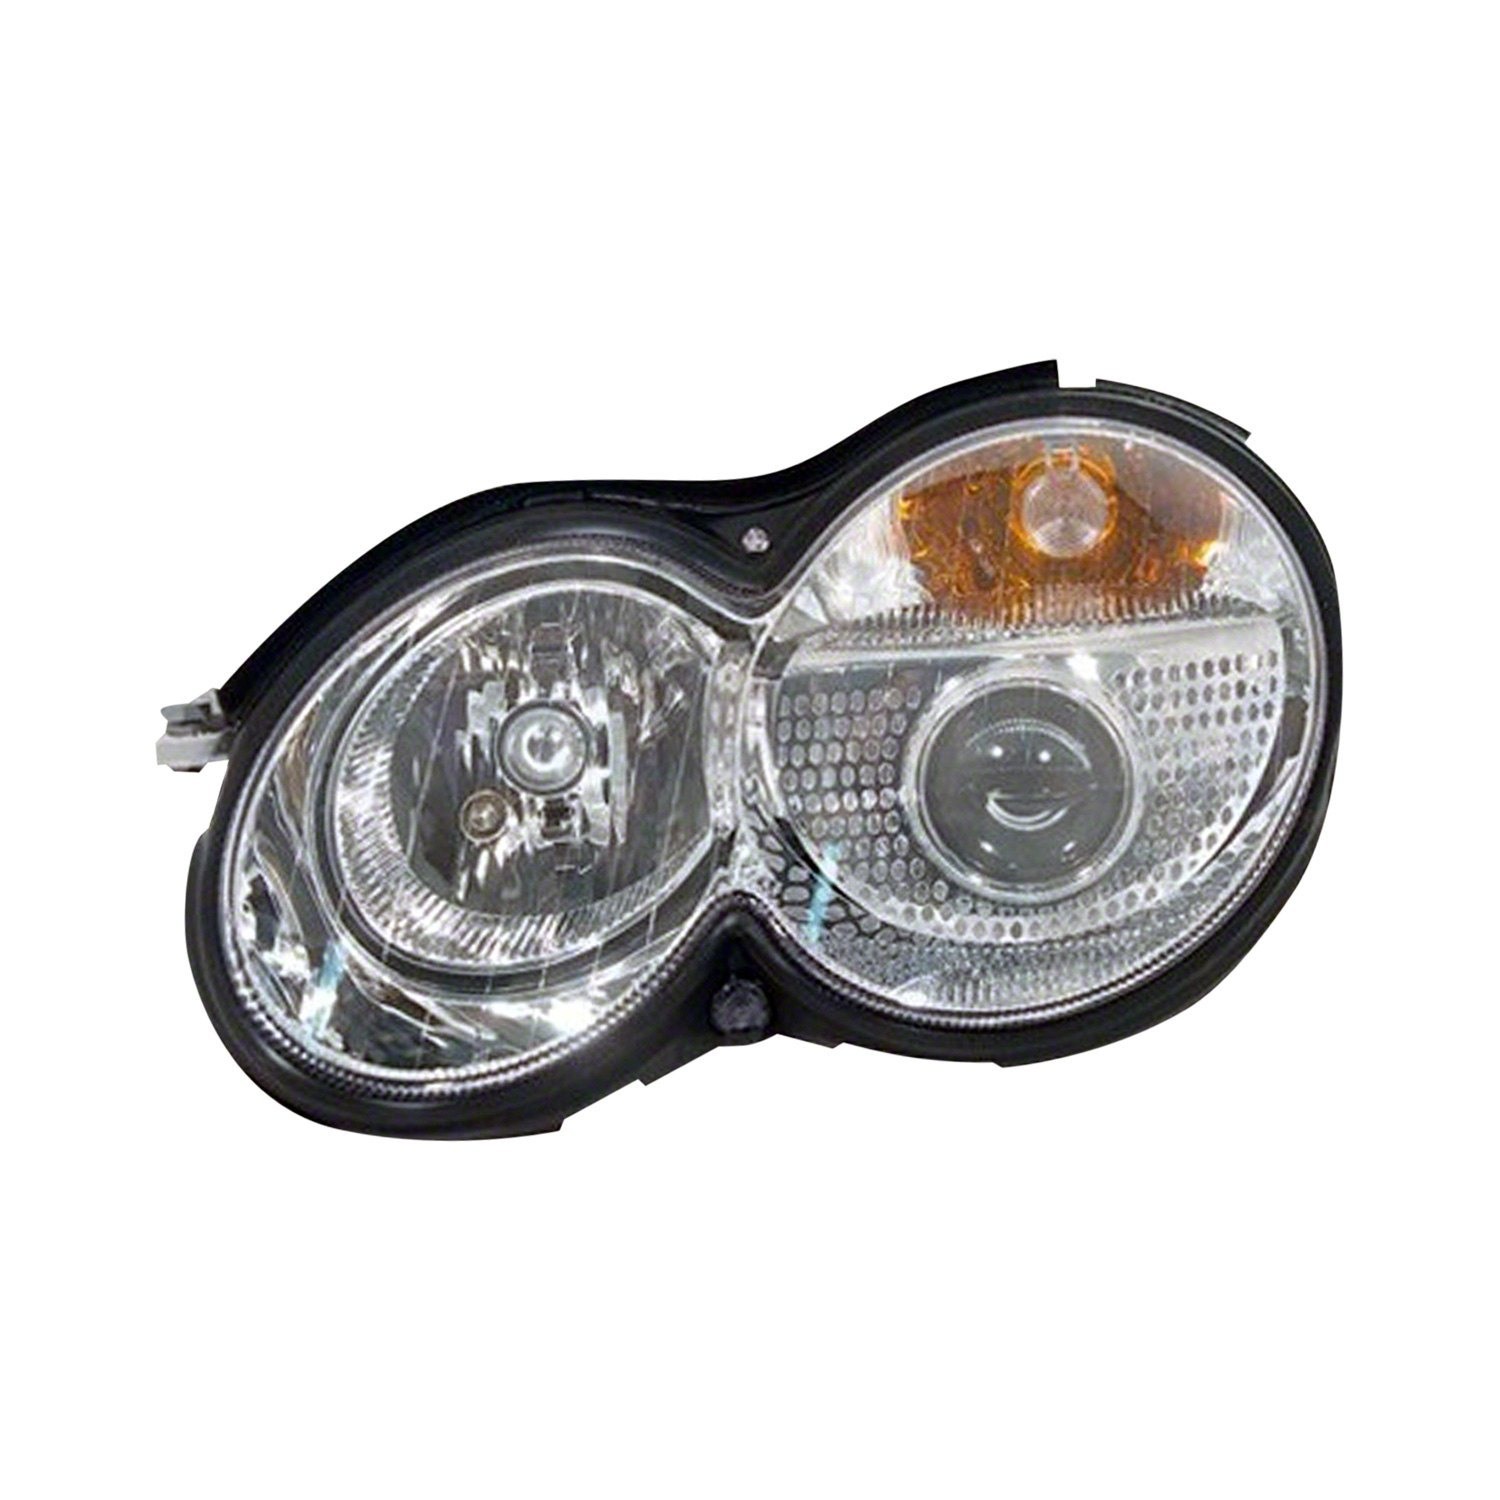 Replace mercedes sl500 sl55 amg sl600 2005 for Mercedes benz headlight replacement